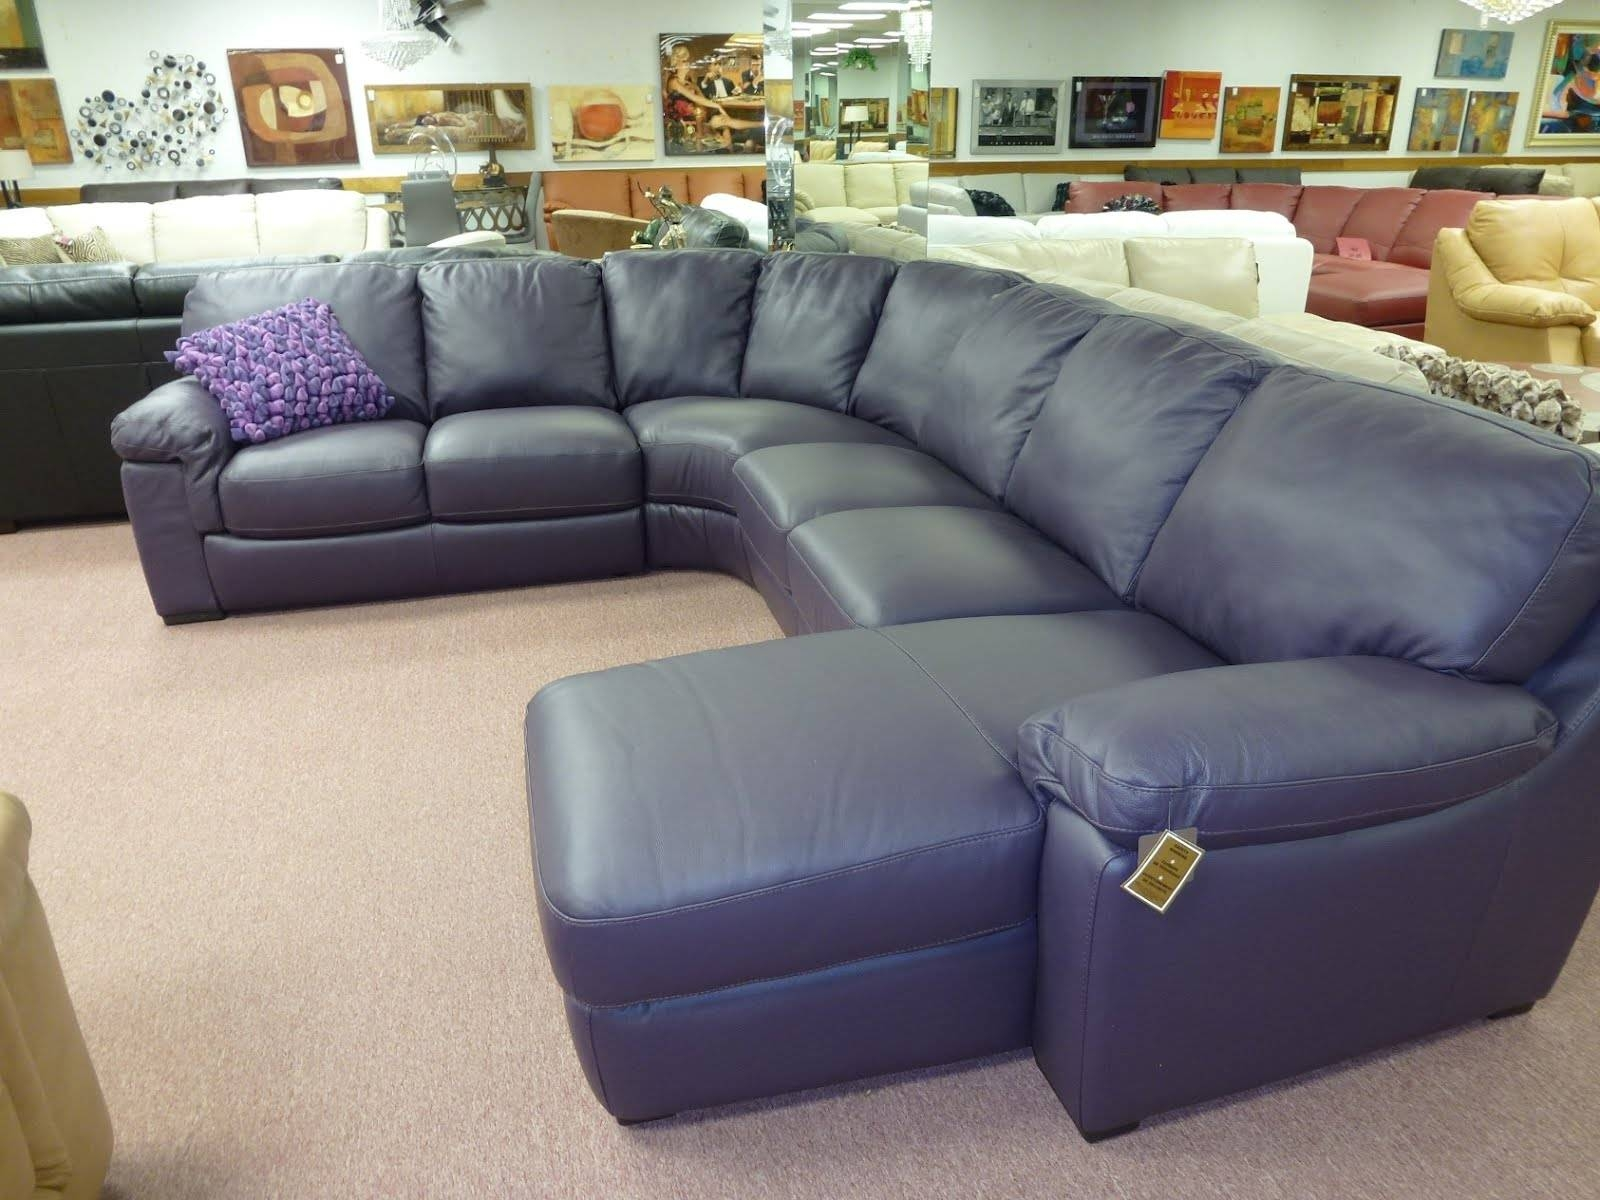 Wonderful Navy Blue Leather Sectional Sofa 91 In Cindy Crawford In Cindy Crawford Leather Sectional Sofas (View 12 of 15)